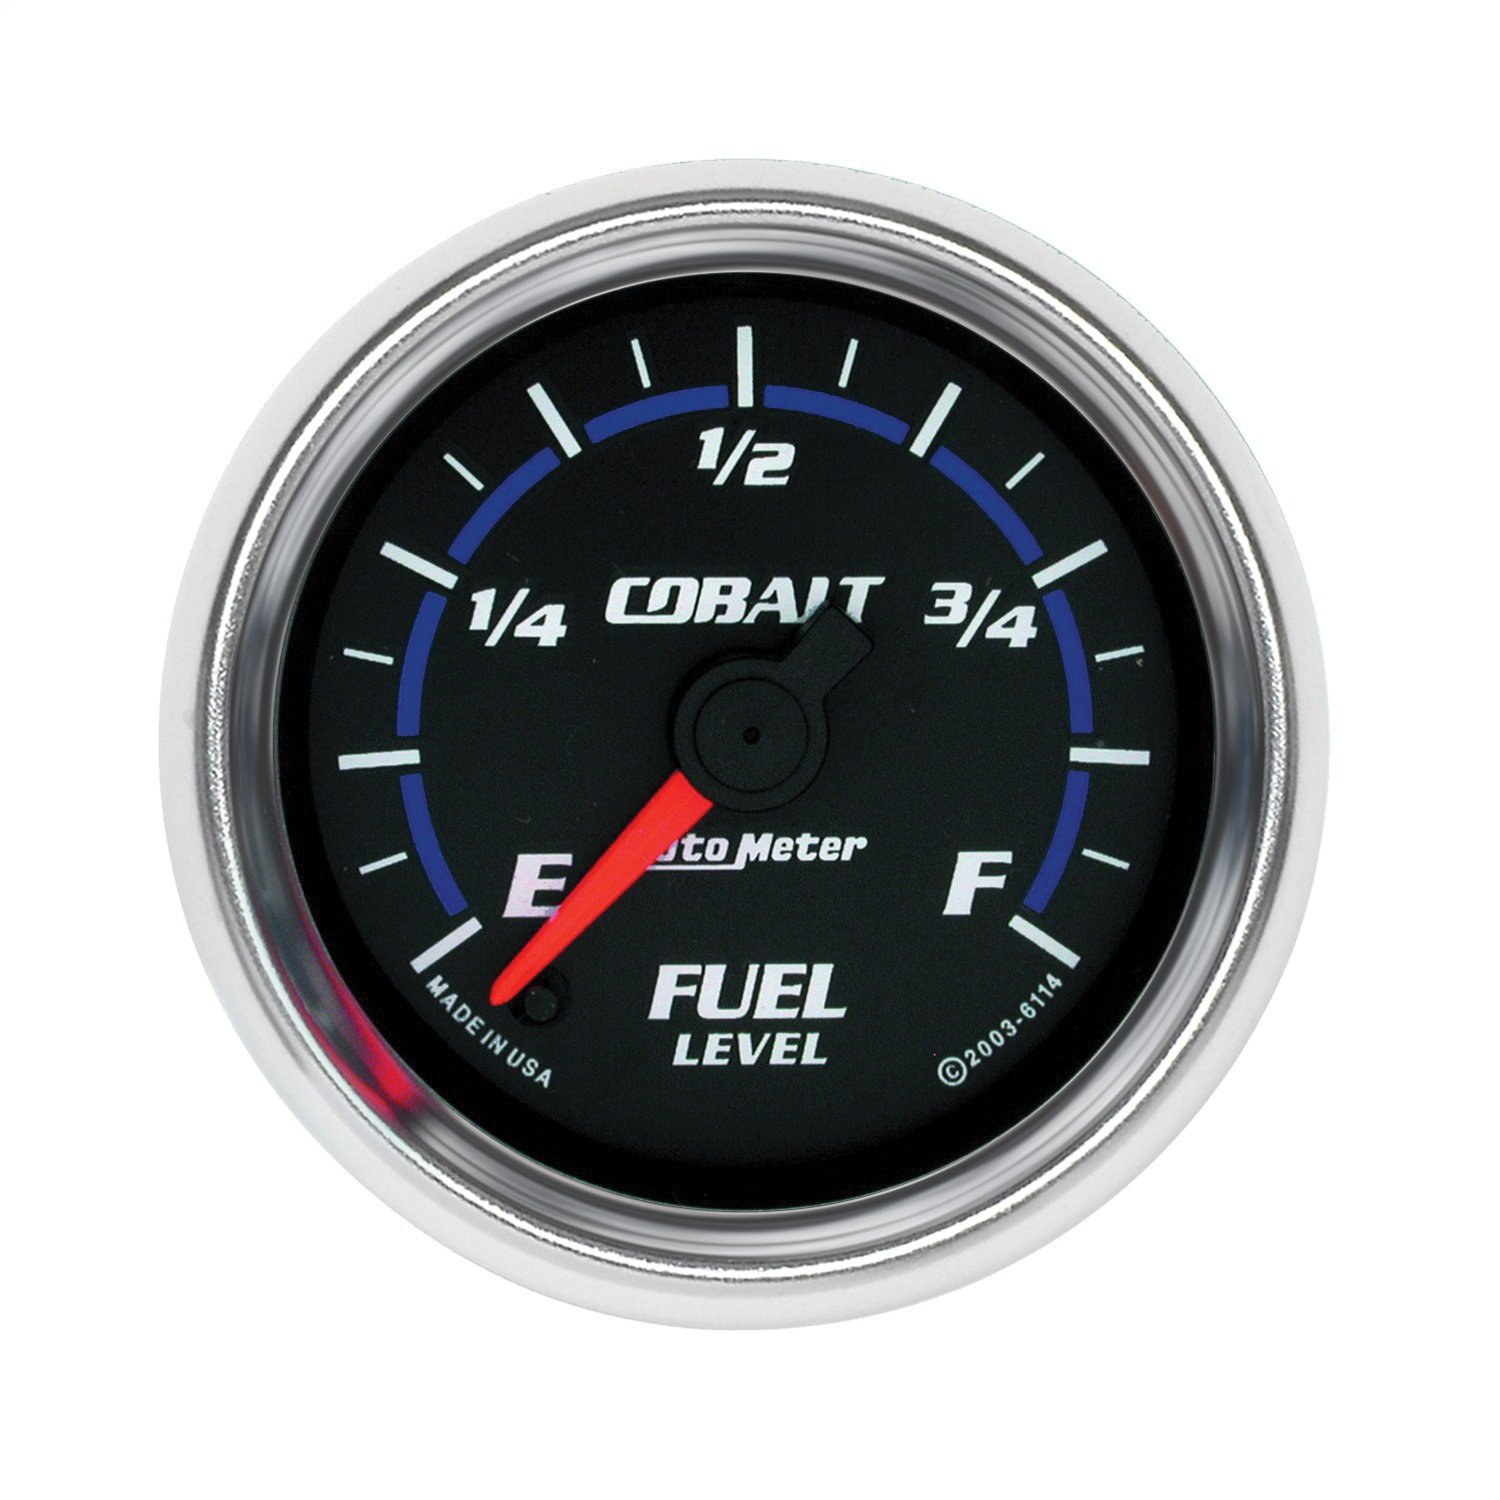 Auto Meter 6114 Cobalt Full Sweep Electrical Fuel Level Gauge